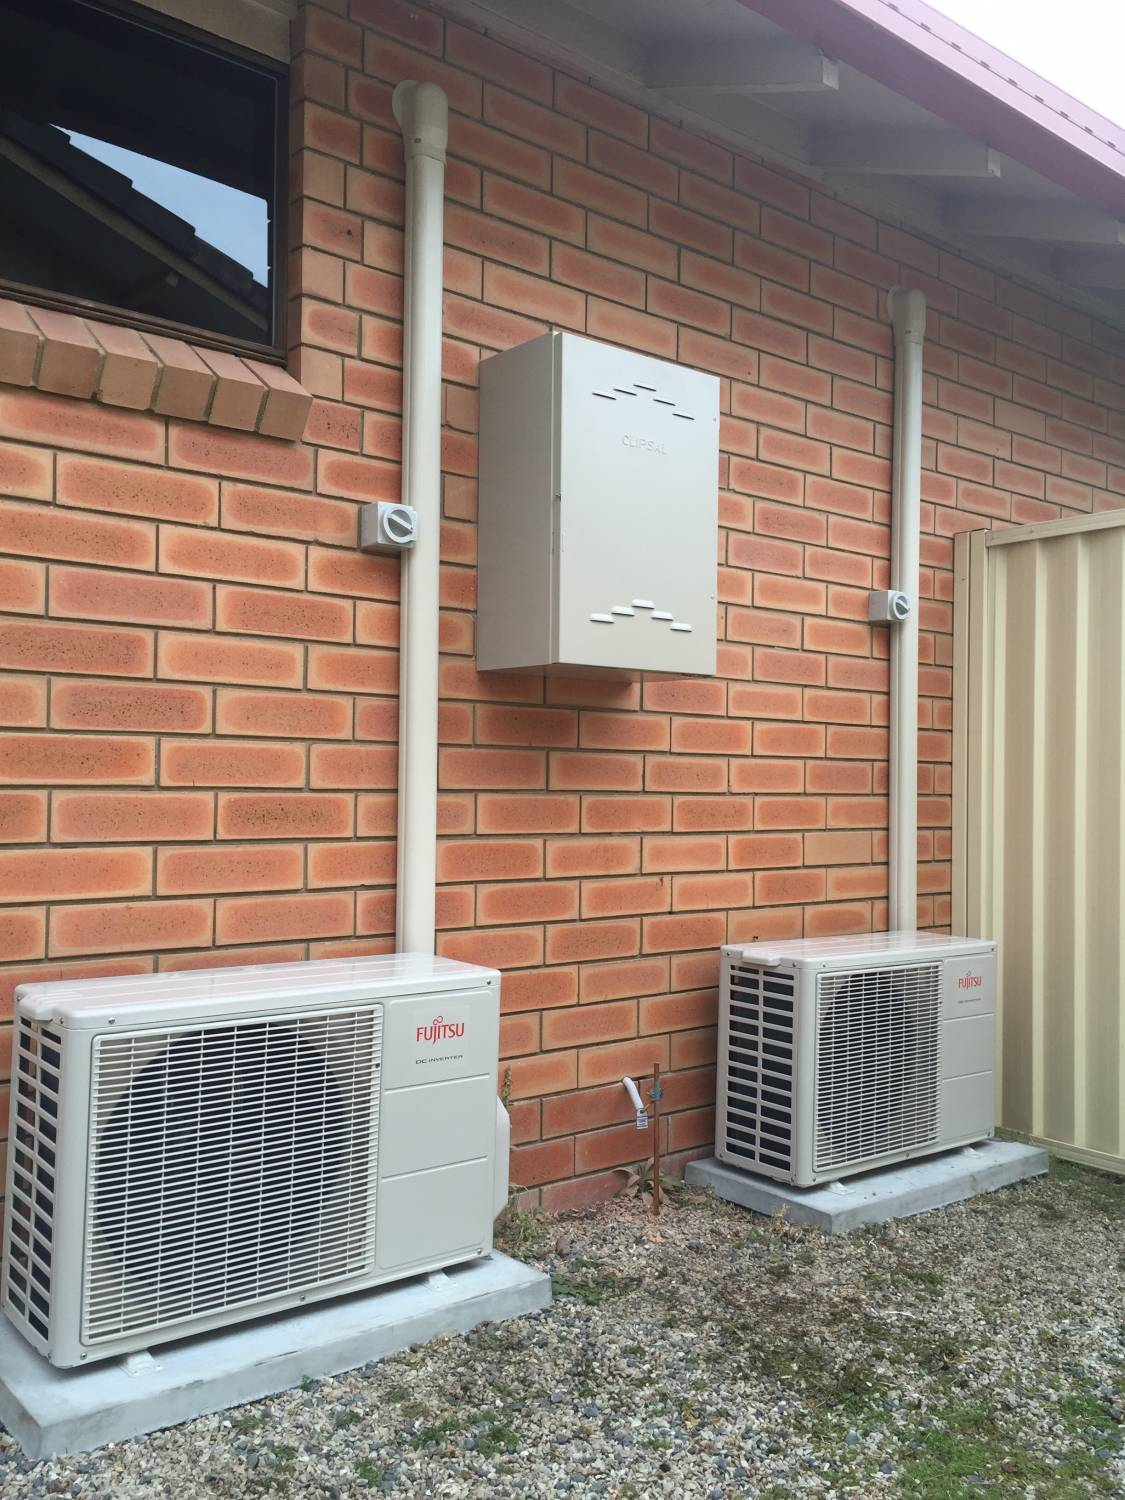 #8E583D Air Conditioning Gold Coast Highly Rated 8029 Air Conditioner Installation Tokyo wallpapers with 1125x1500 px on helpvideos.info - Air Conditioners, Air Coolers and more